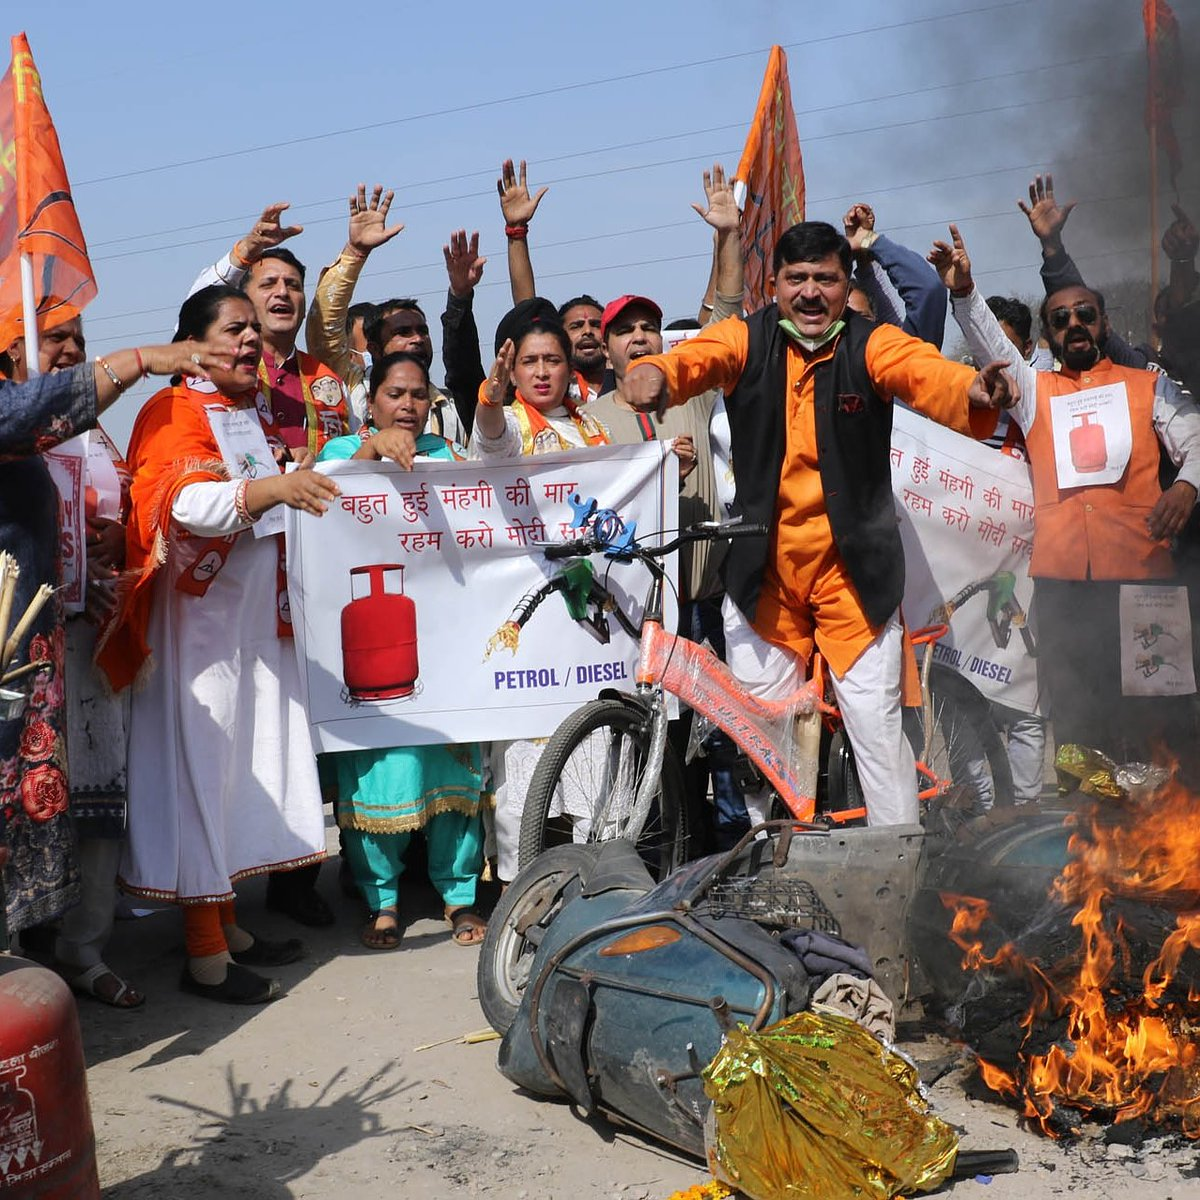 Shiv Sena  protest against price-hike of fuel and LPG  #JAMMU: The activists  of Shiv Sena Bal Thackeray, Jammu  protest against the skyhigh prises of Petrol, Diesel and LPG.Angry Shiv Sanik's  also set their two-wheeler on fire and Shouting slogans against union government.